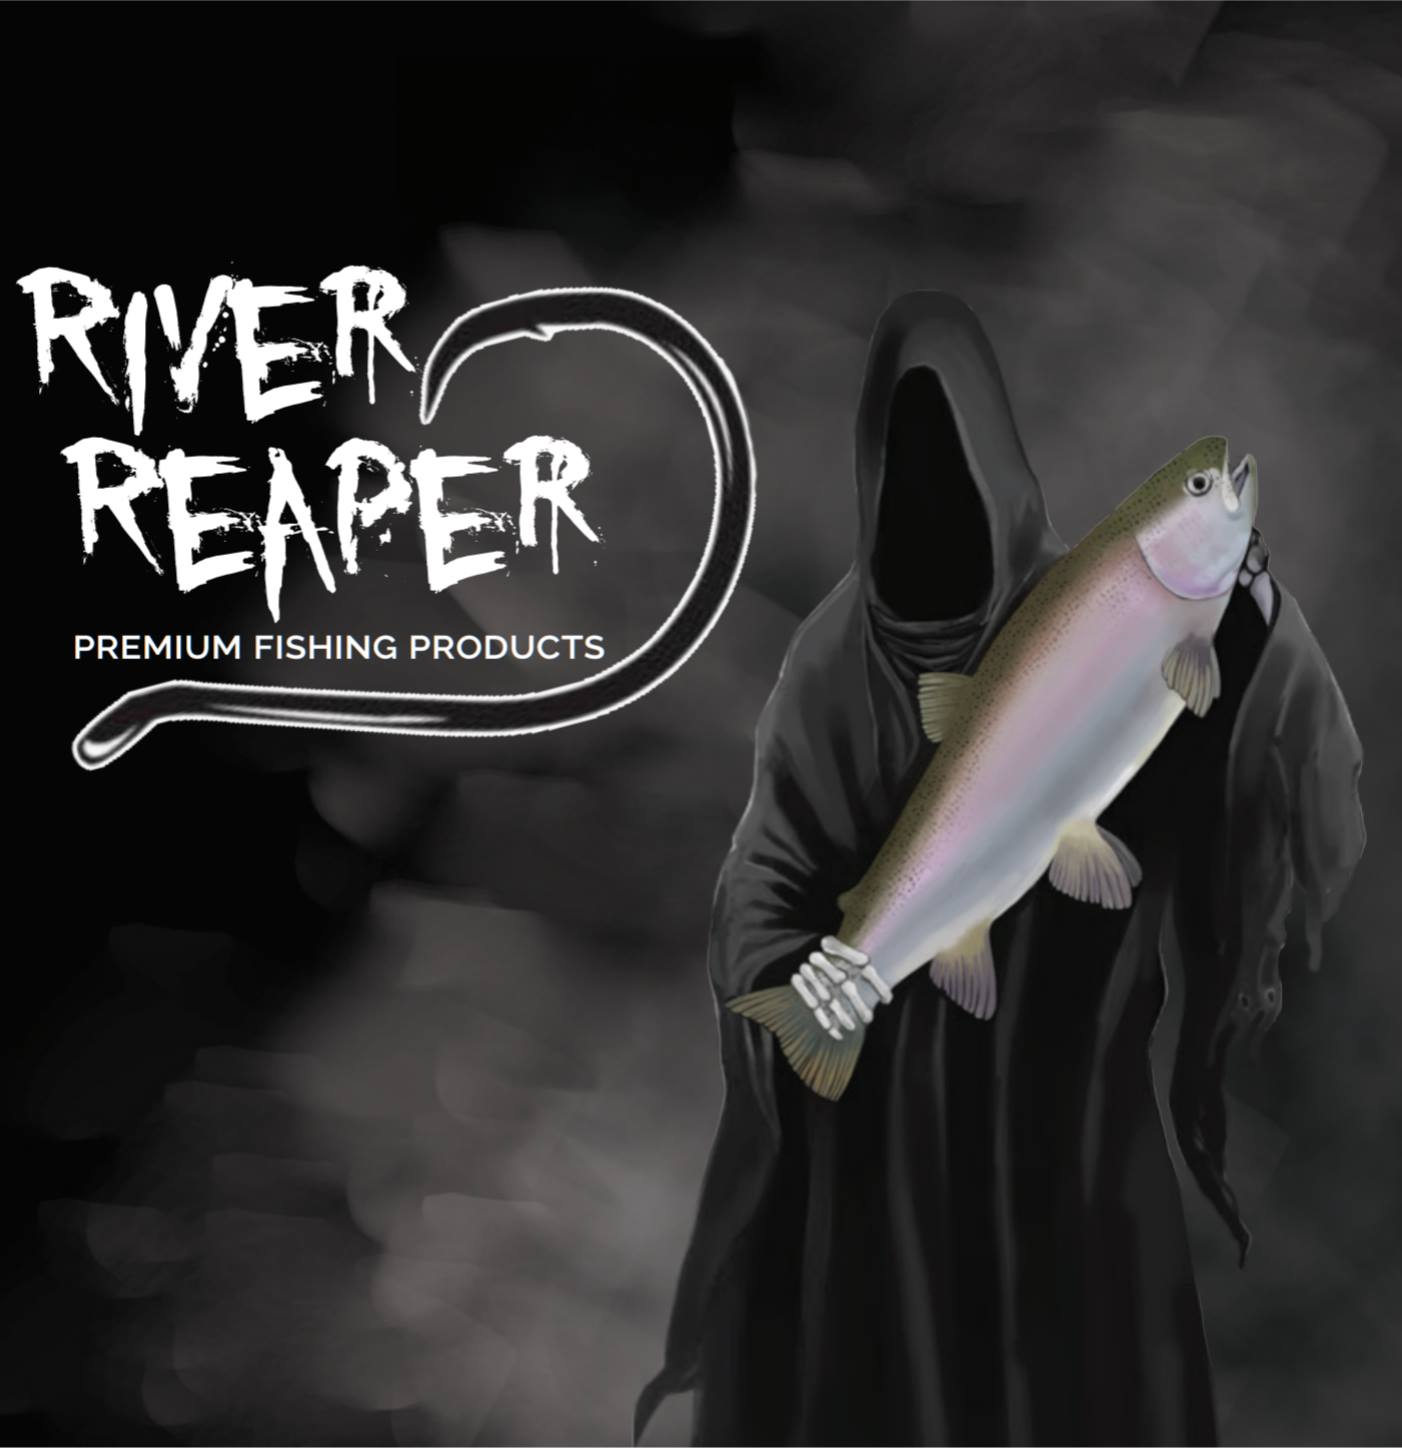 River Reaper Premium Fishing Products